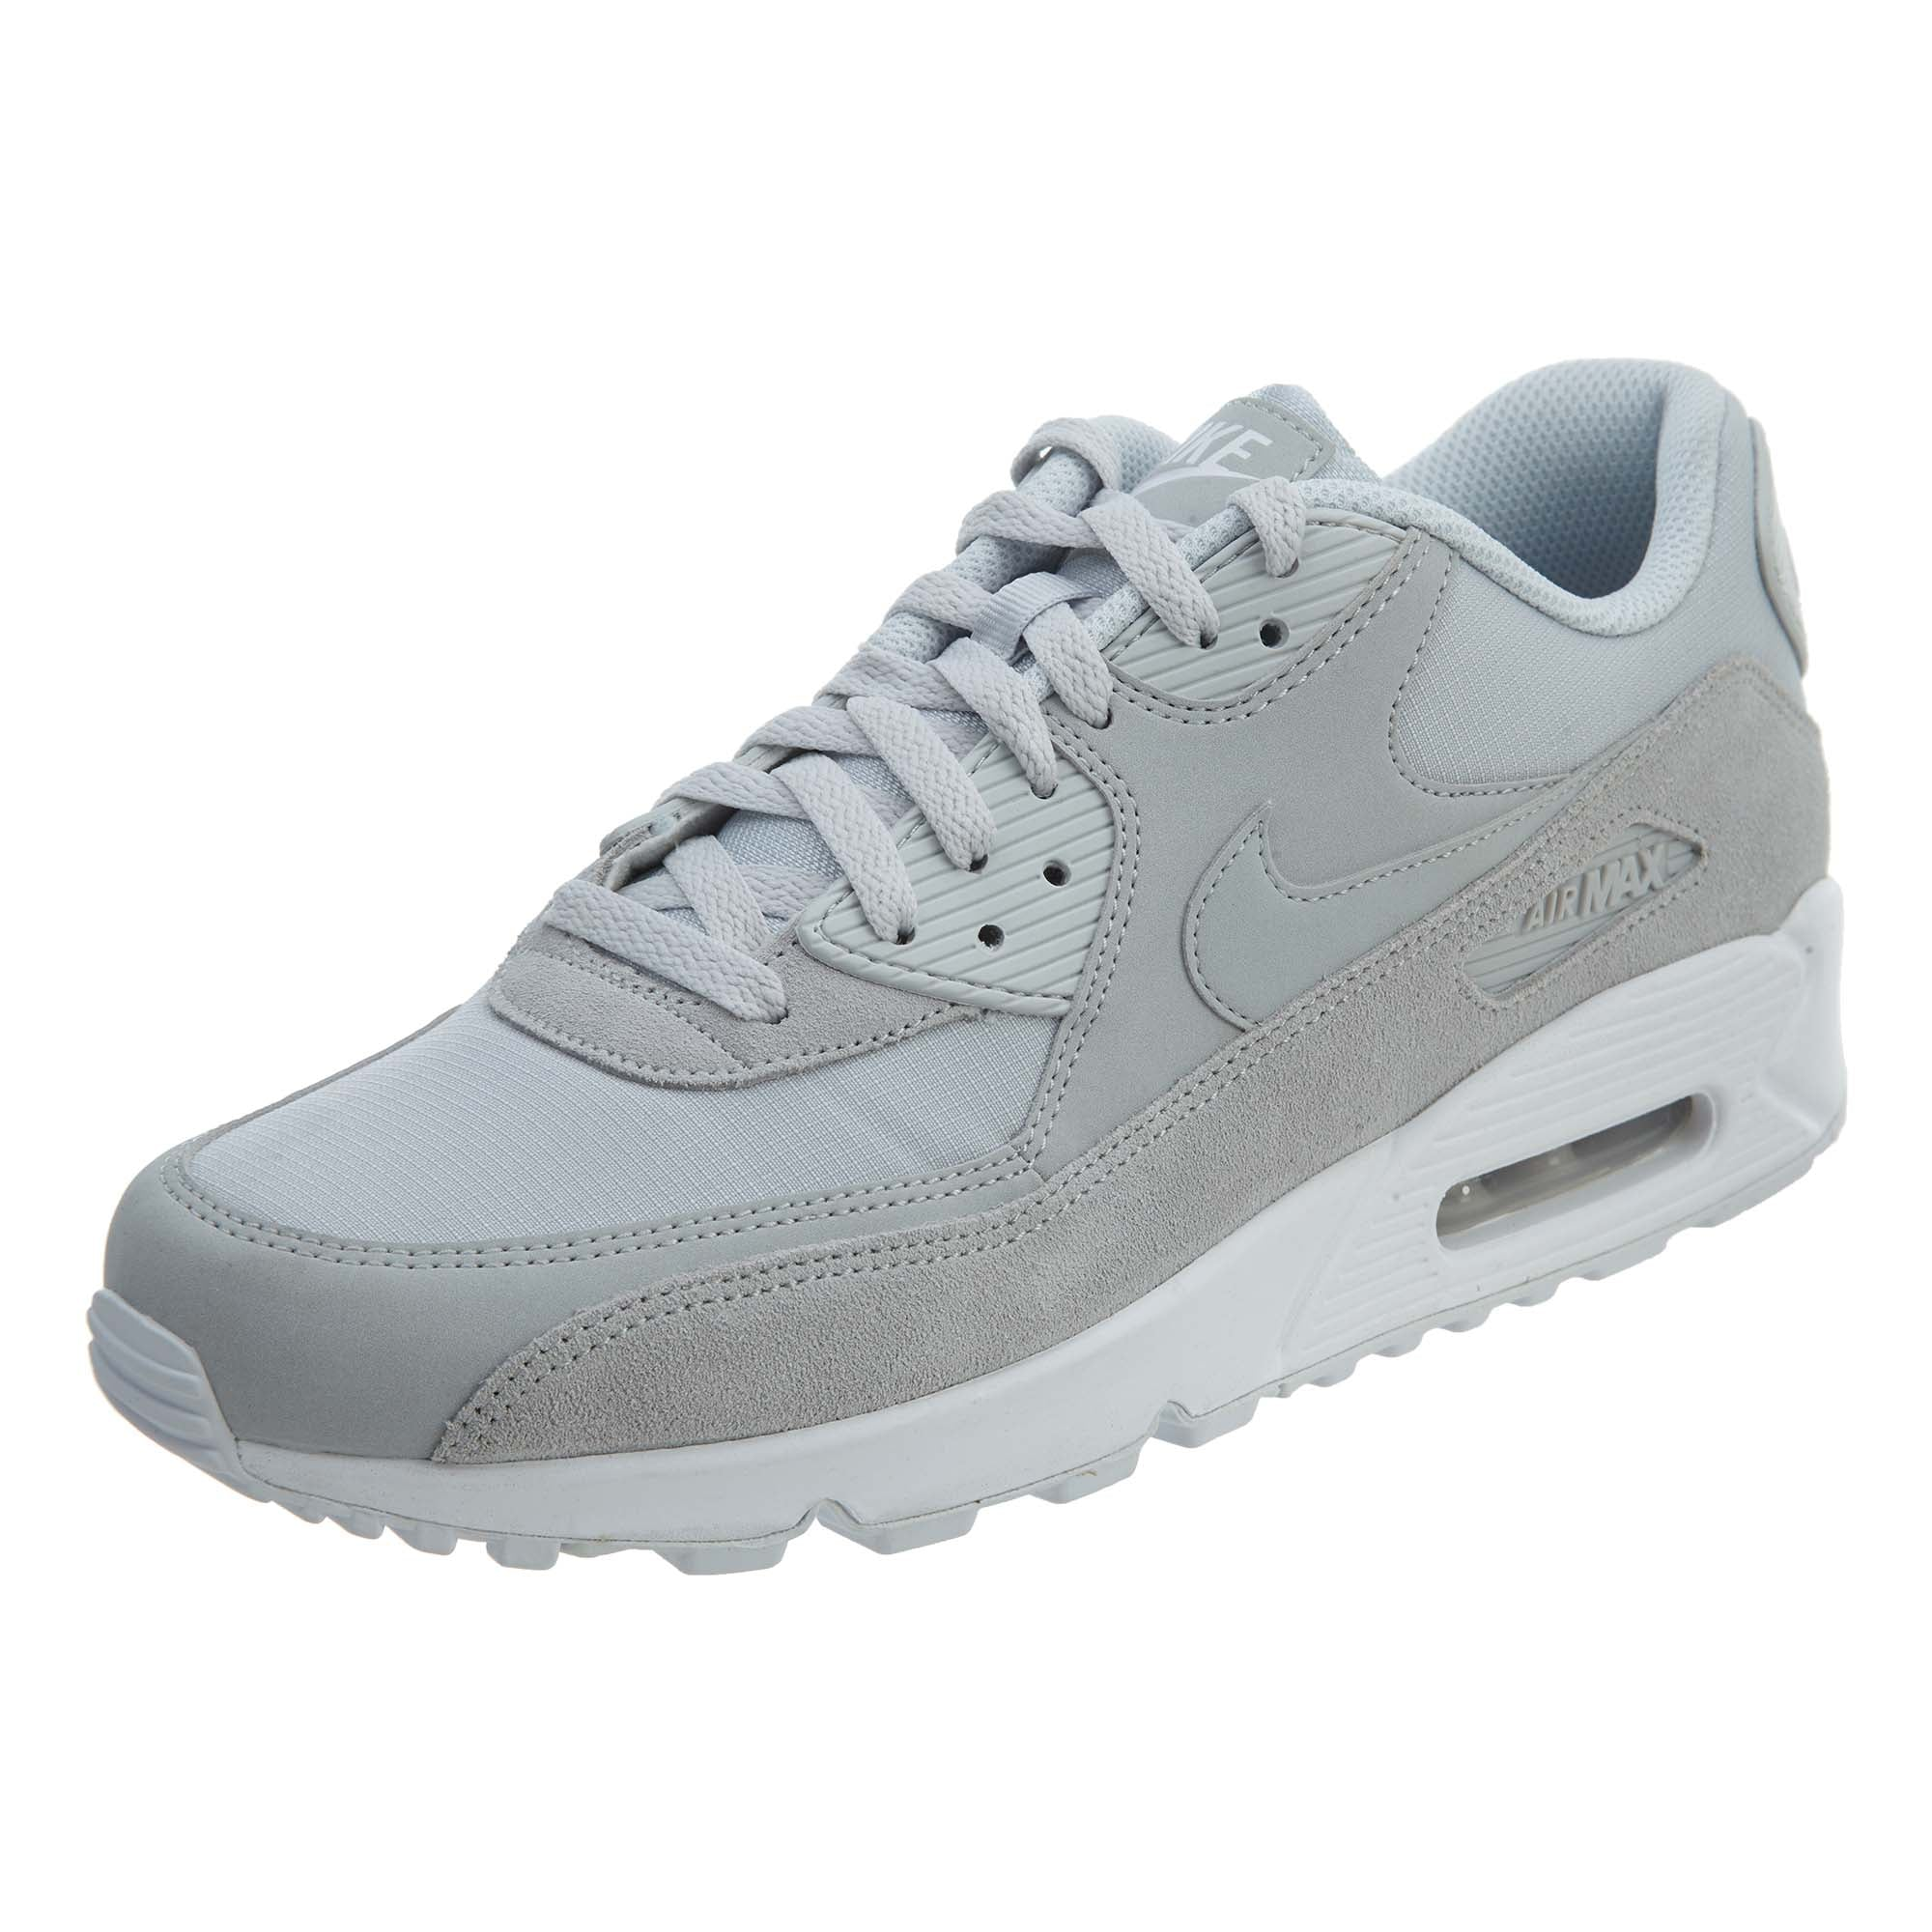 outlet store 67cb8 16553 Nike Air Max 90 Essential Mens Style   Aj1285